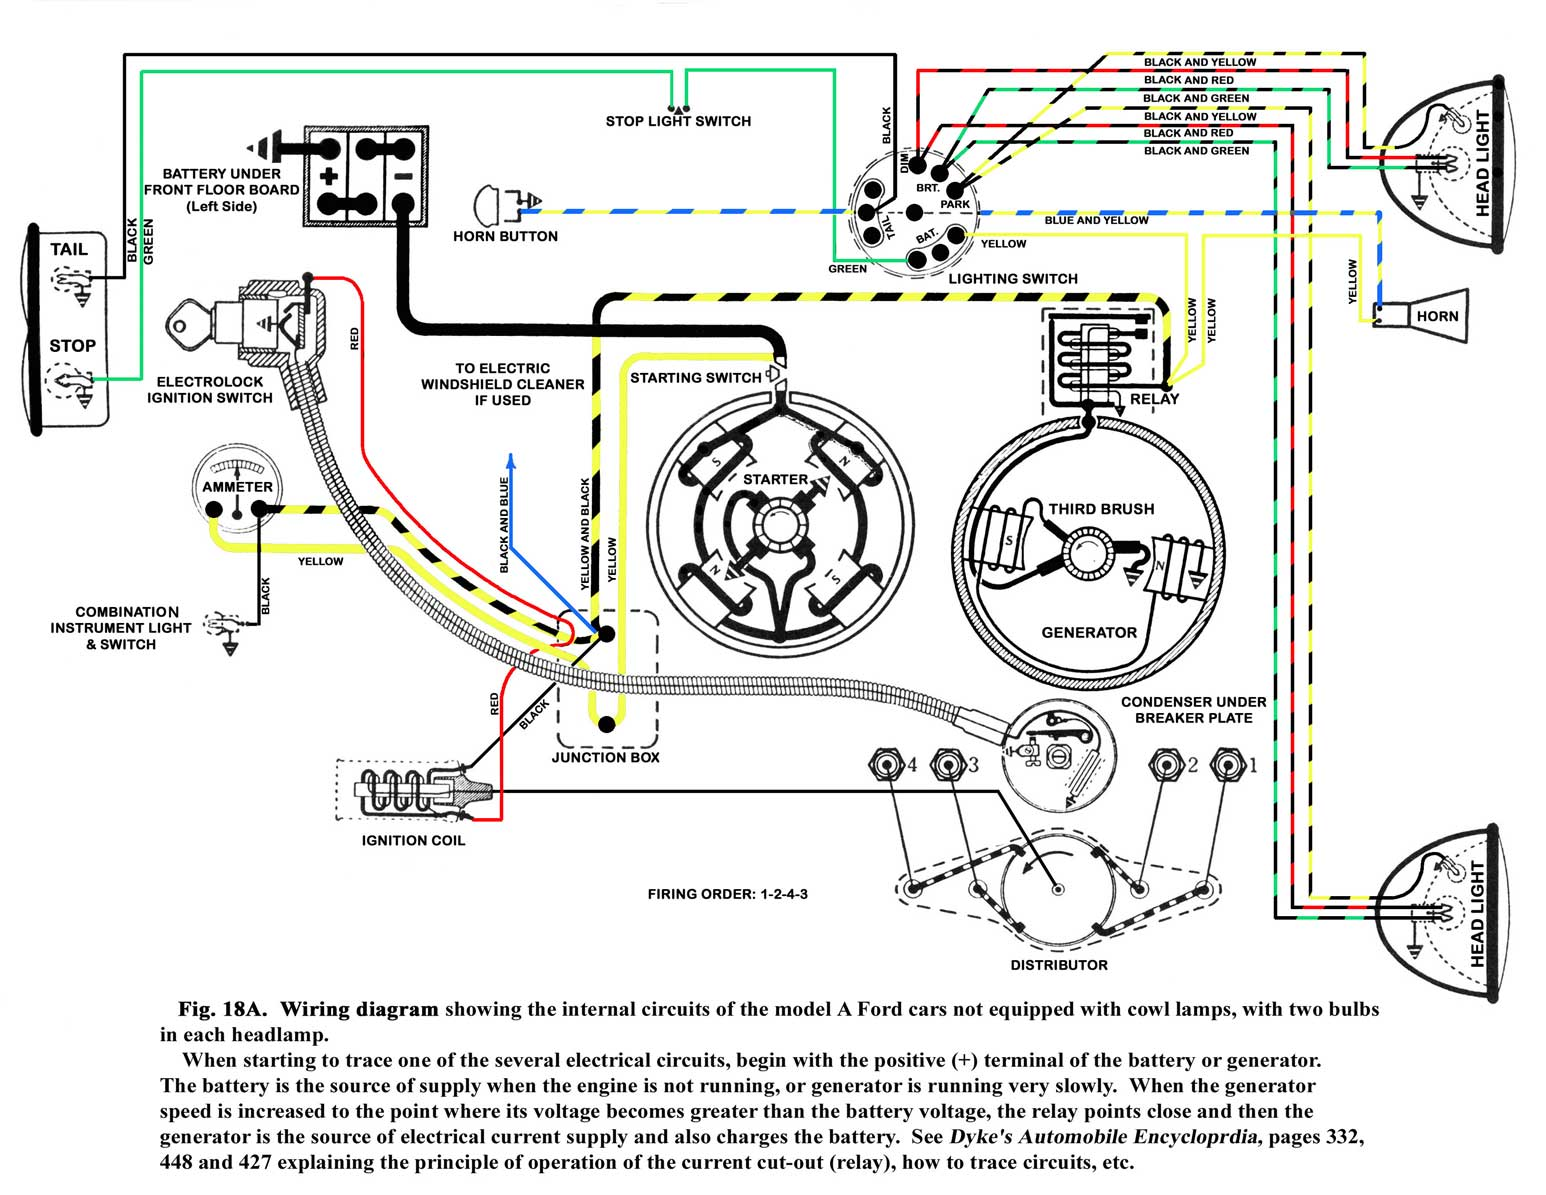 Ford Wiring Diagrams - Wiring Diagram Data on denso wiring, reese wiring, ford wiring, mopar wiring, autometer wiring, aeromotive wiring, bosch wiring, amp research wiring,